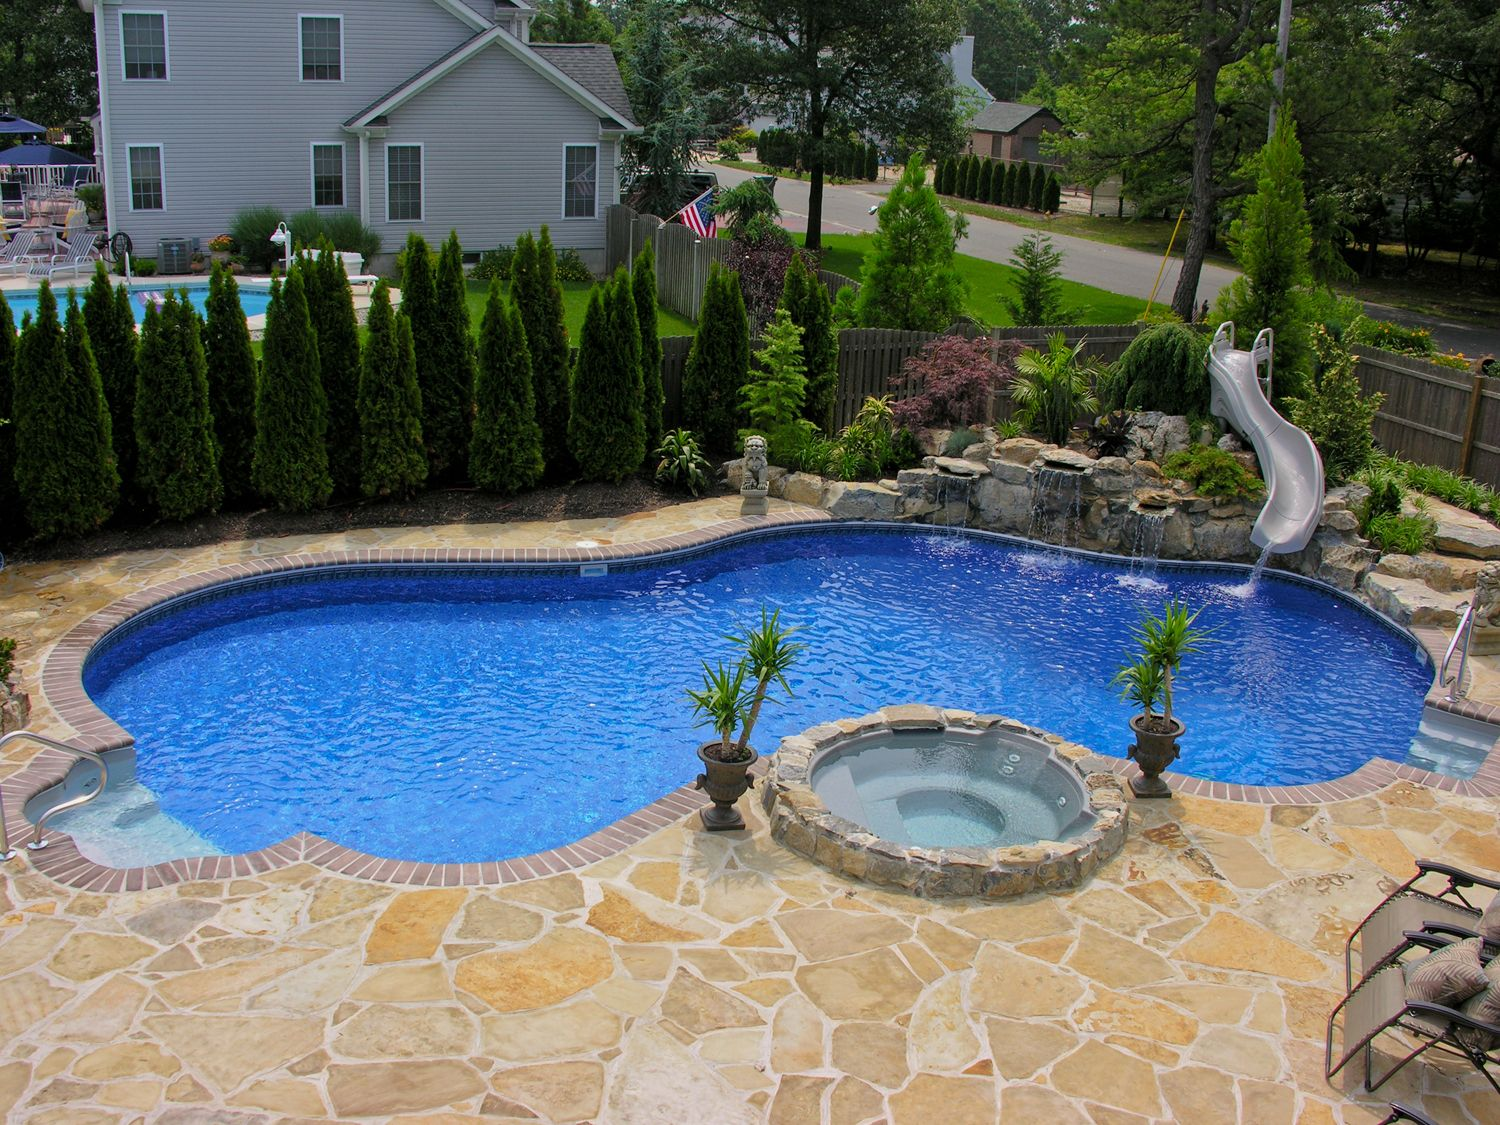 Pool Town Nj Inground Swimming Pools With Spa And Slide